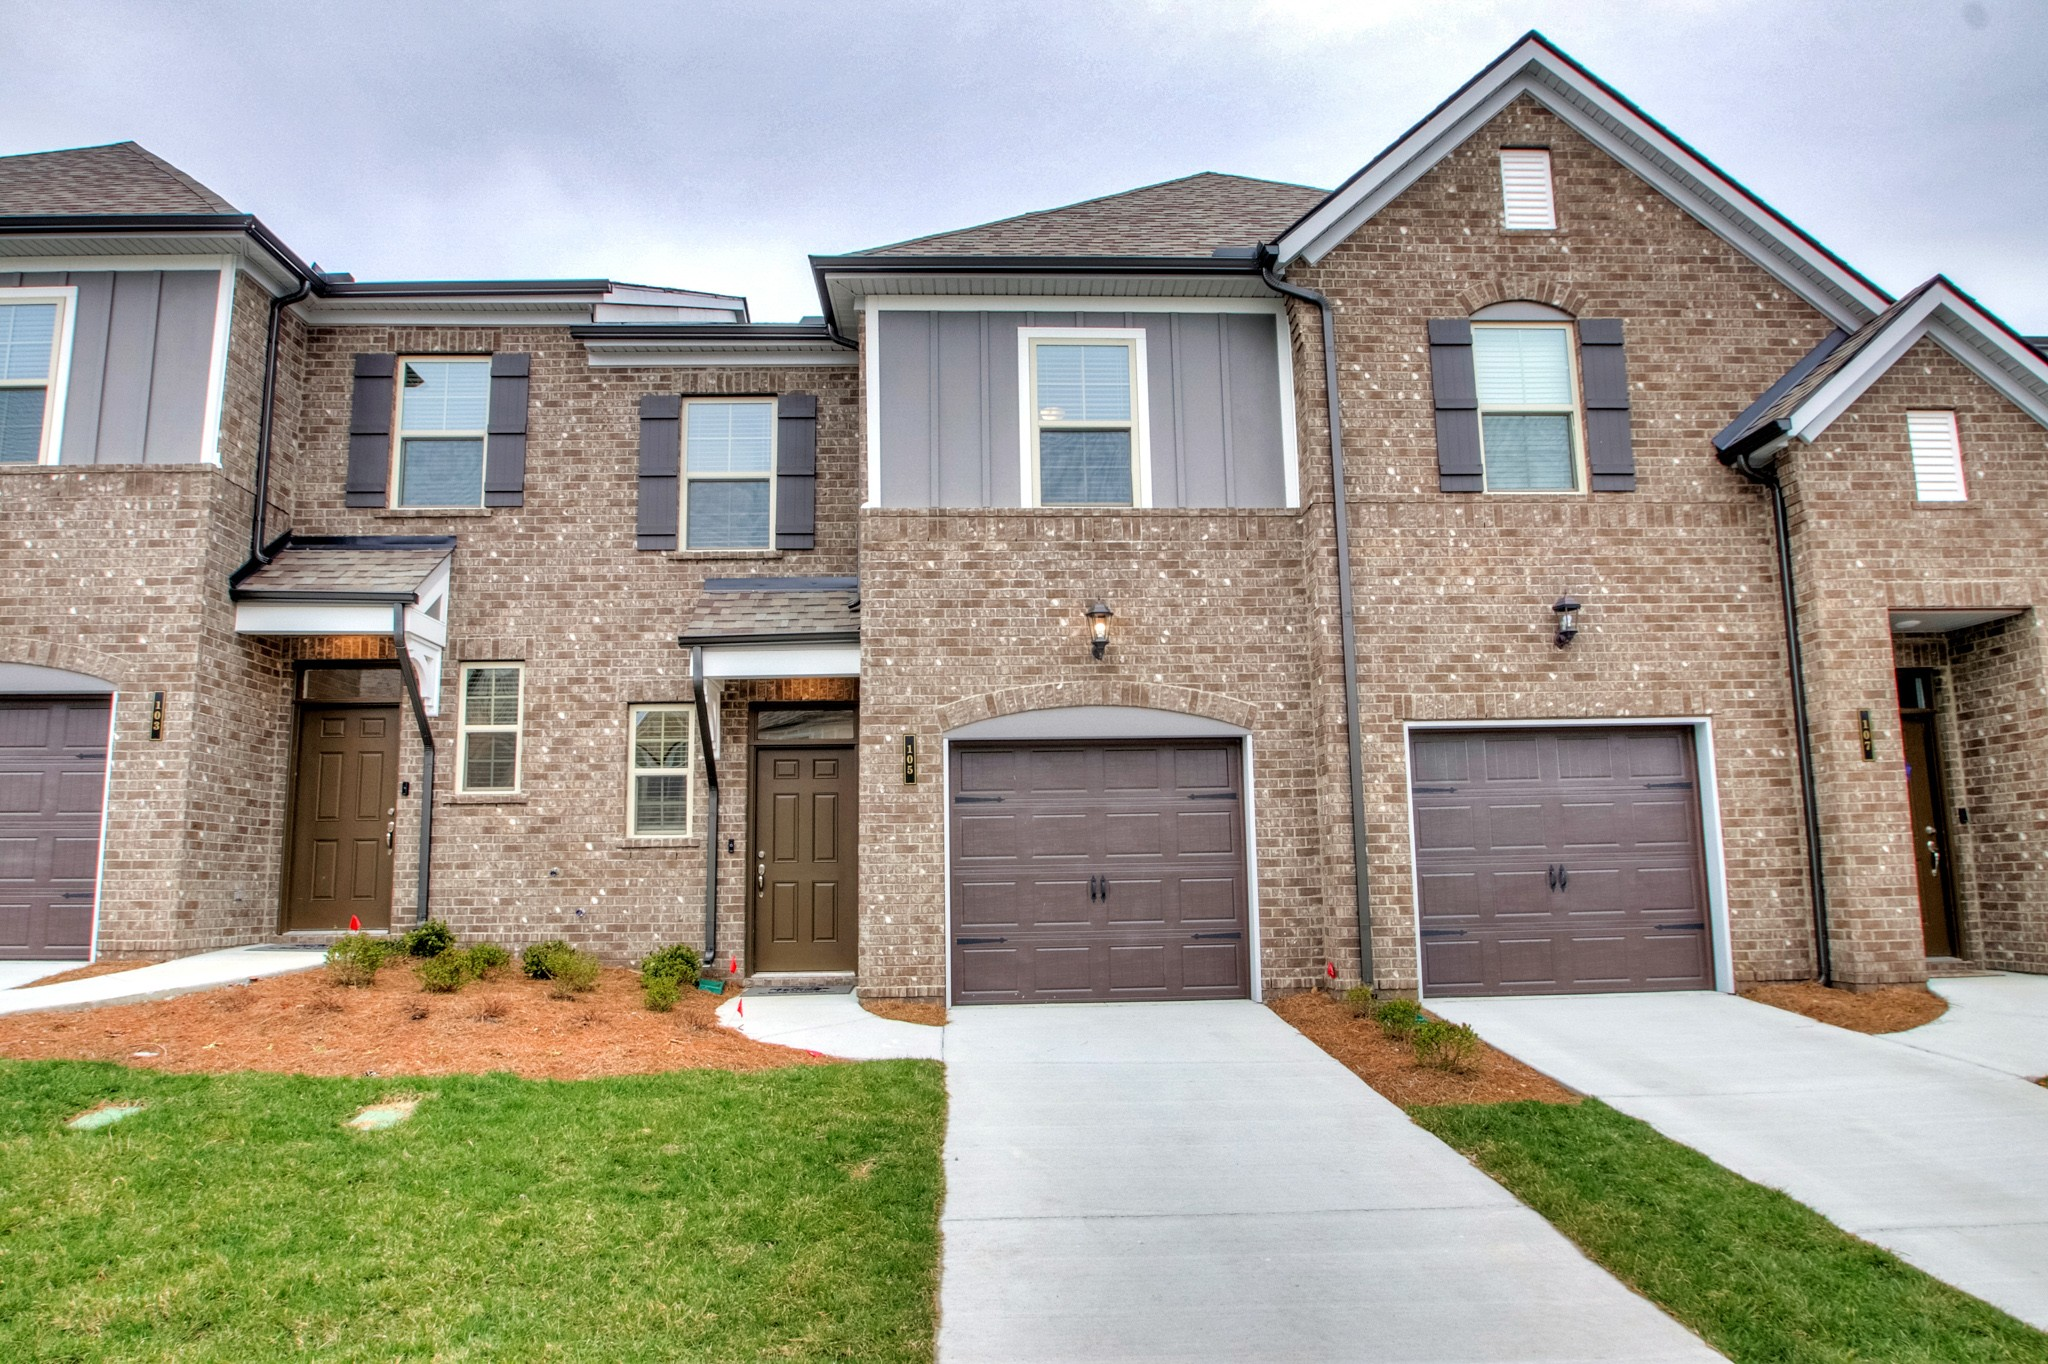 $245,990 - 3Br/3Ba -  for Sale in Holland Ridge Townhomes, Lebanon